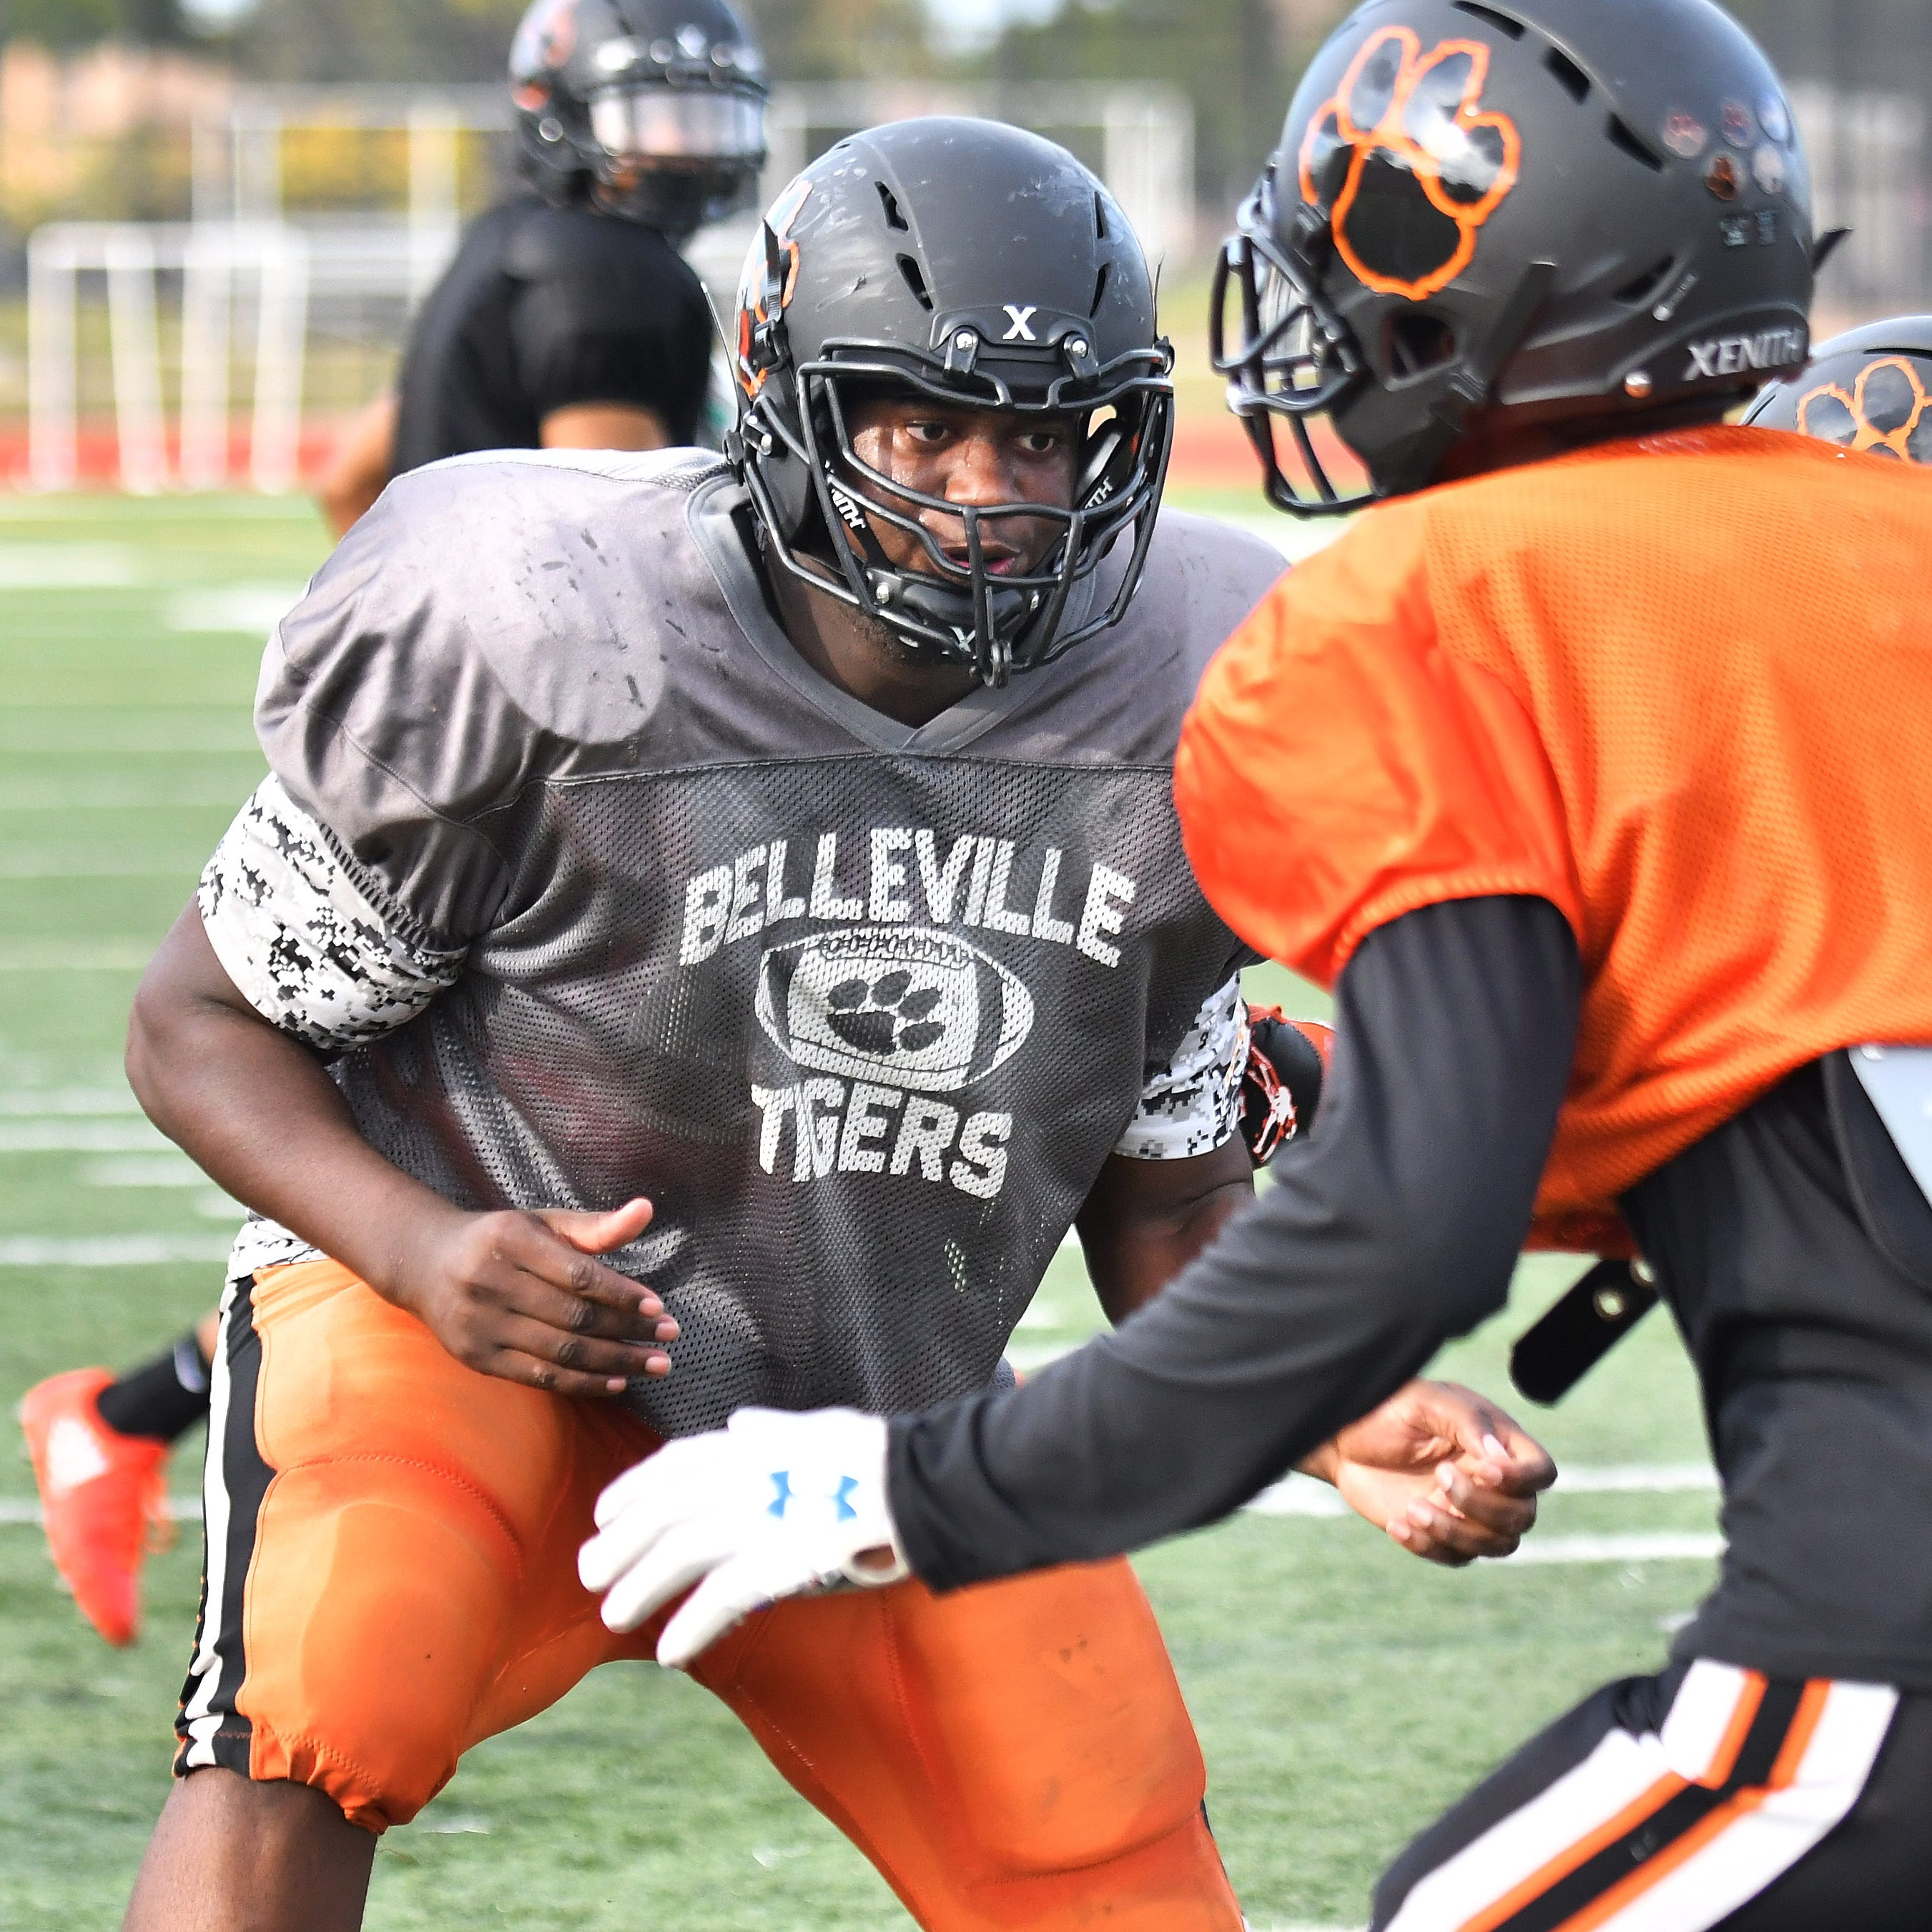 Detroit News No. 1 player: Belleville's Devontae Dobbs says 'watch out'